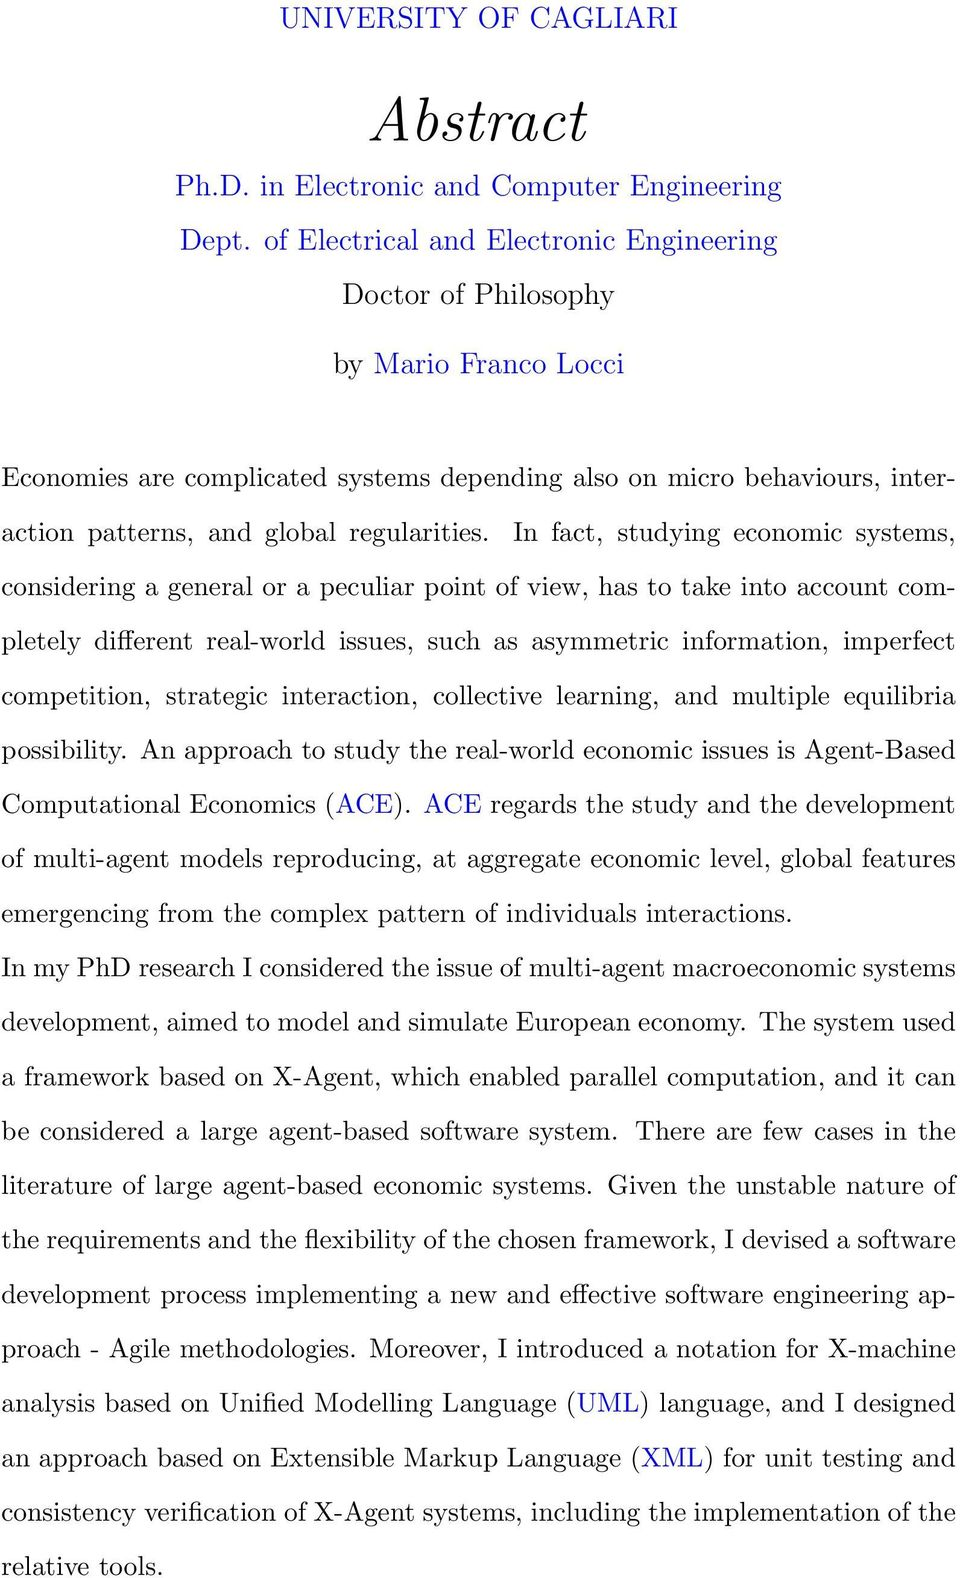 In fact, studying economic systems, considering a general or a peculiar point of view, has to take into account completely different real-world issues, such as asymmetric information, imperfect